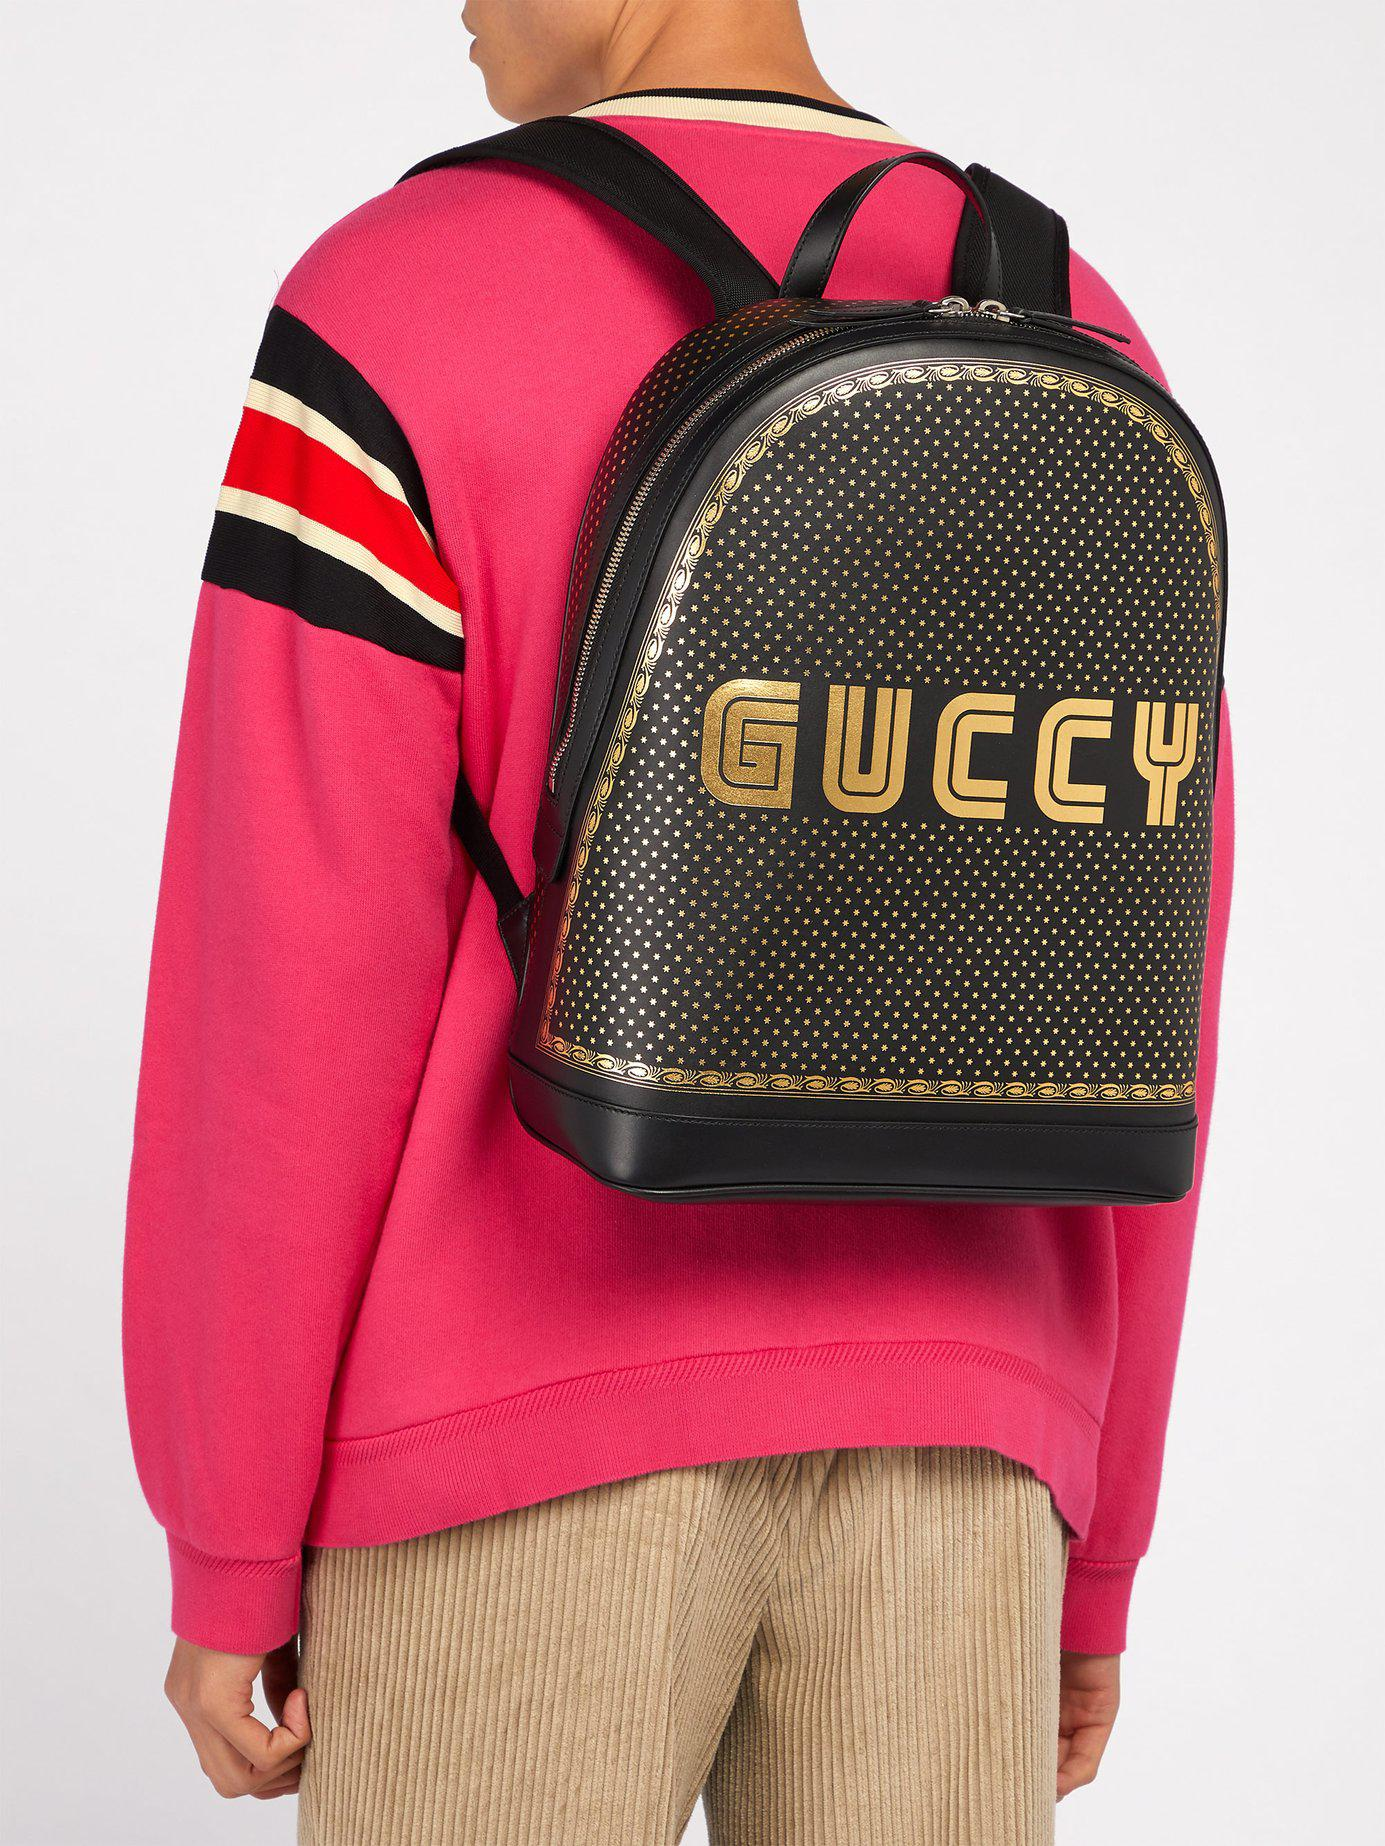 Gucci - Black Guccy Leather Backpack for Men - Lyst. View fullscreen a8681eea24c2f